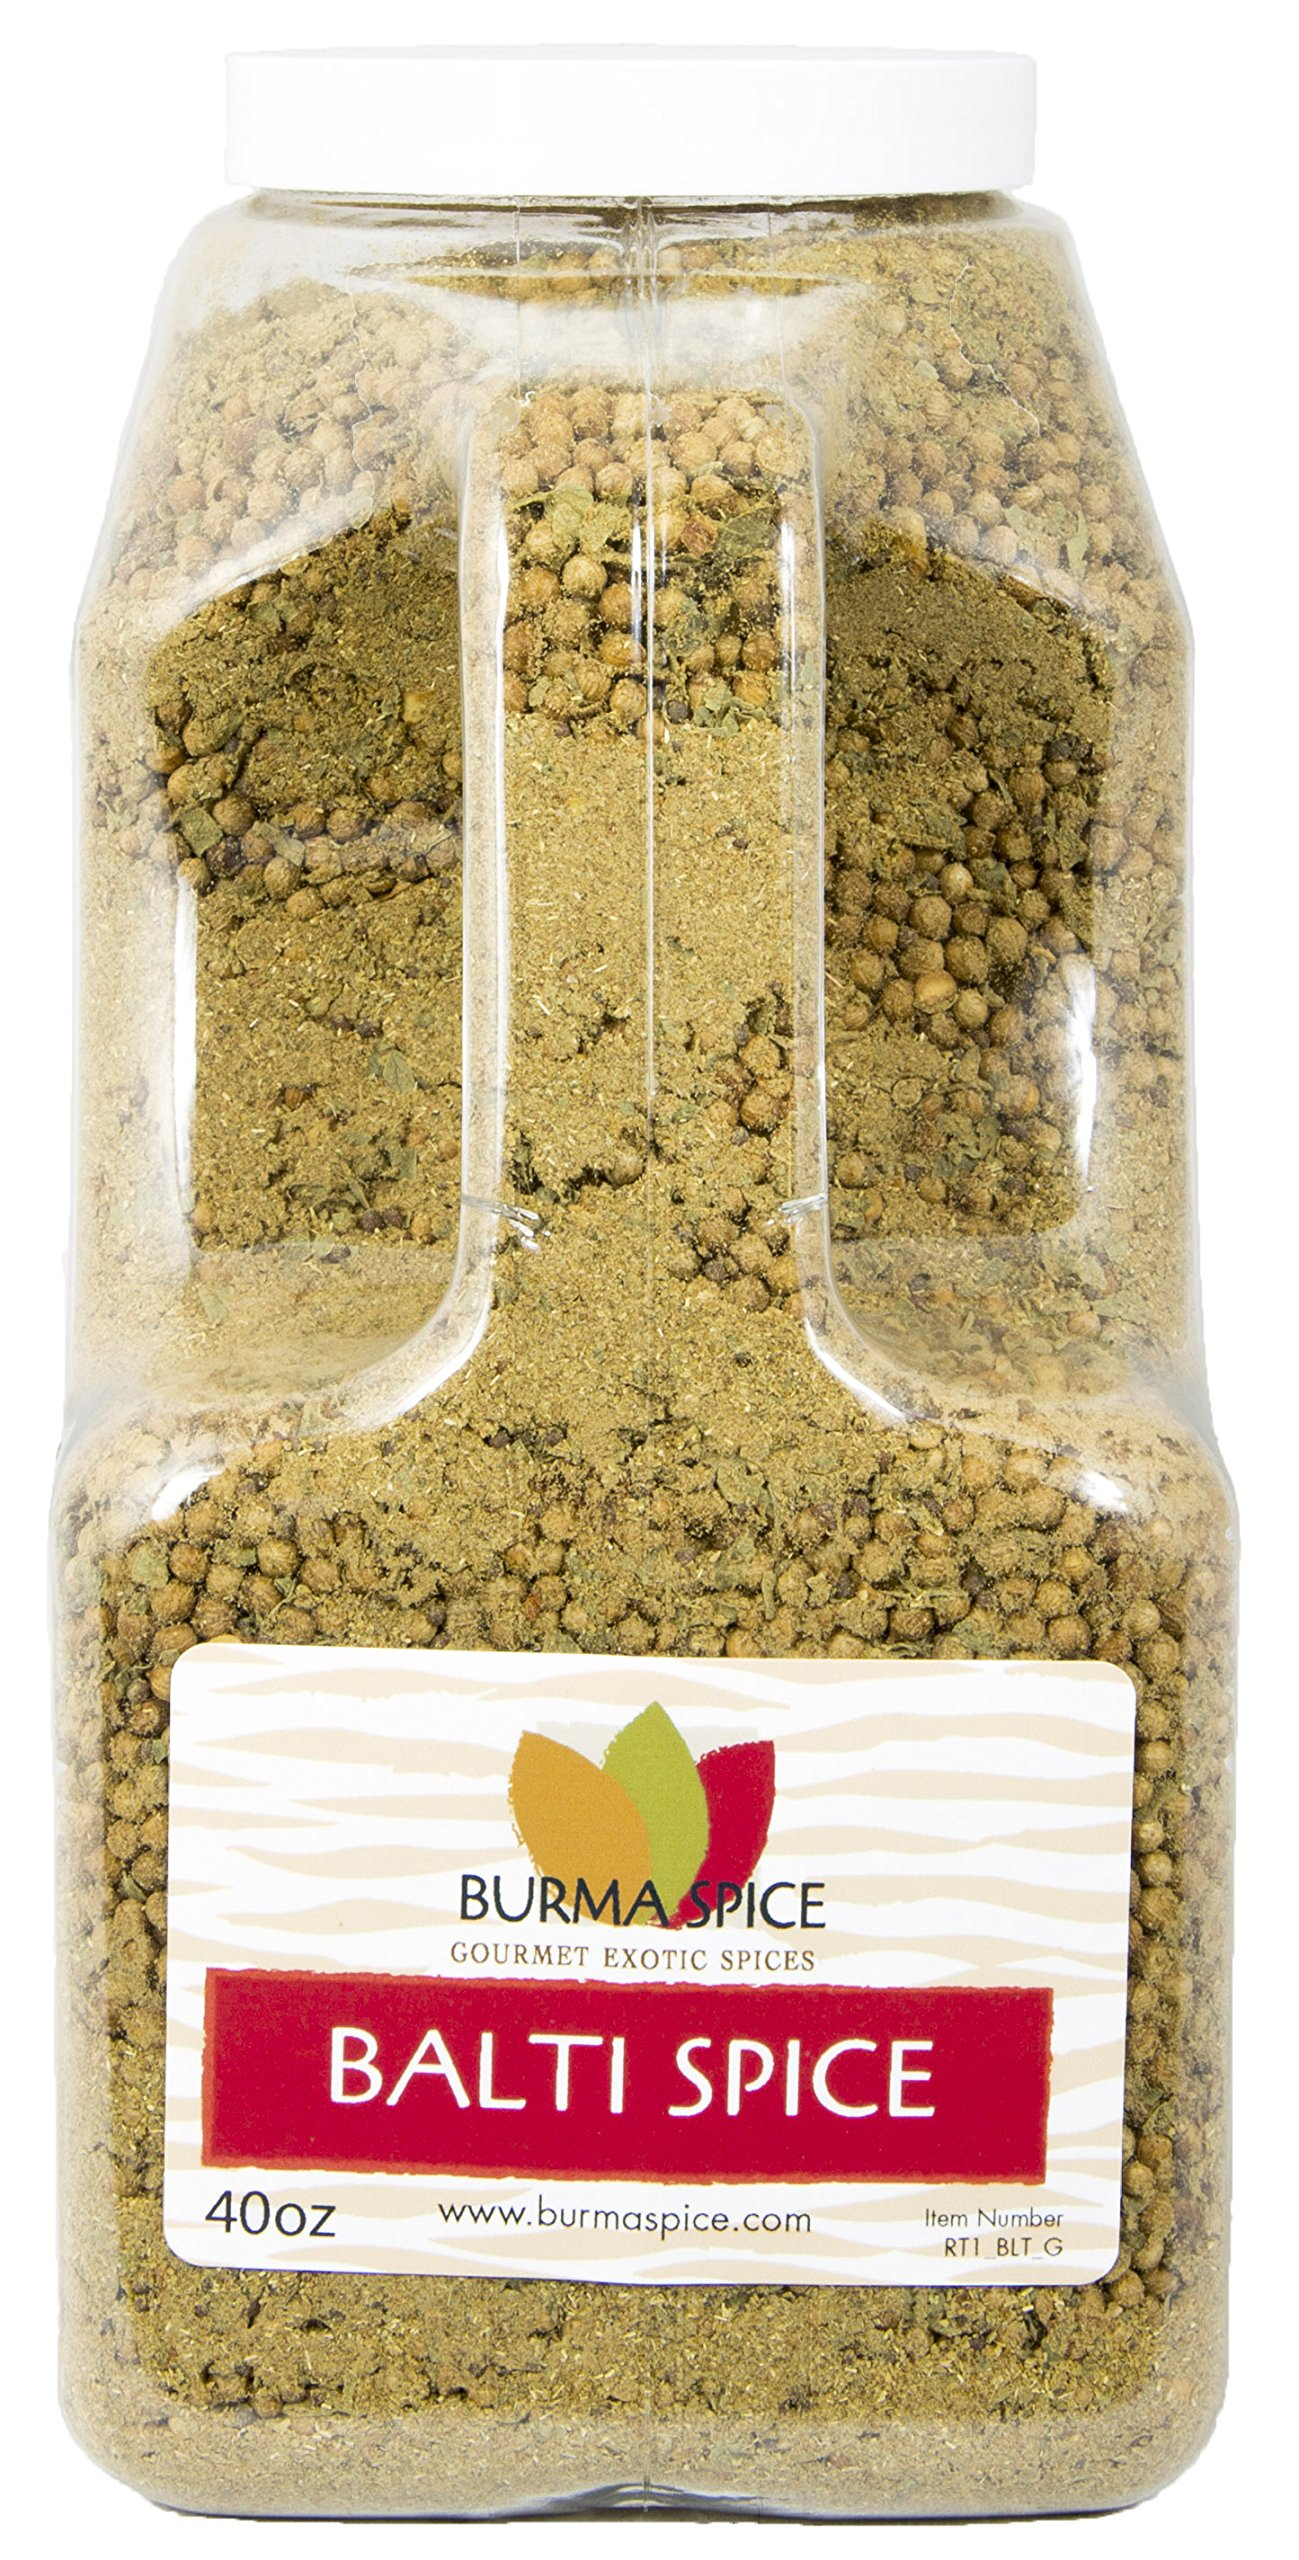 Balti Spice Blend : Used in Kashmiri Cuisine : 16 Spice Mix, Dry Herbs, No additives (40oz.)